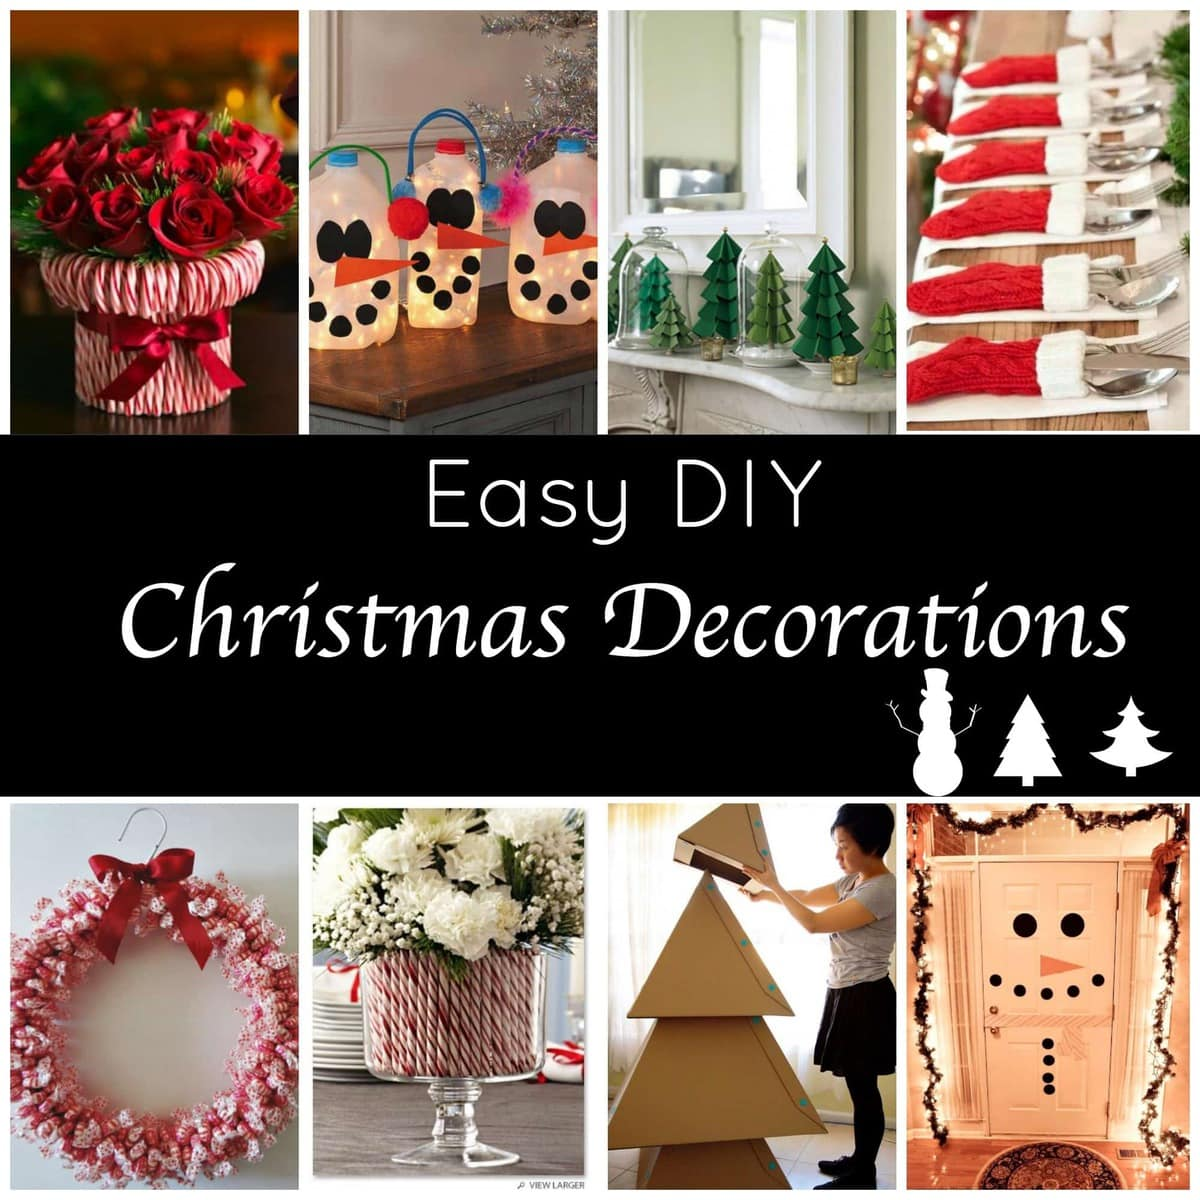 Cute and easy diy holiday decorations for a festive home for Easy diy room decor pinterest